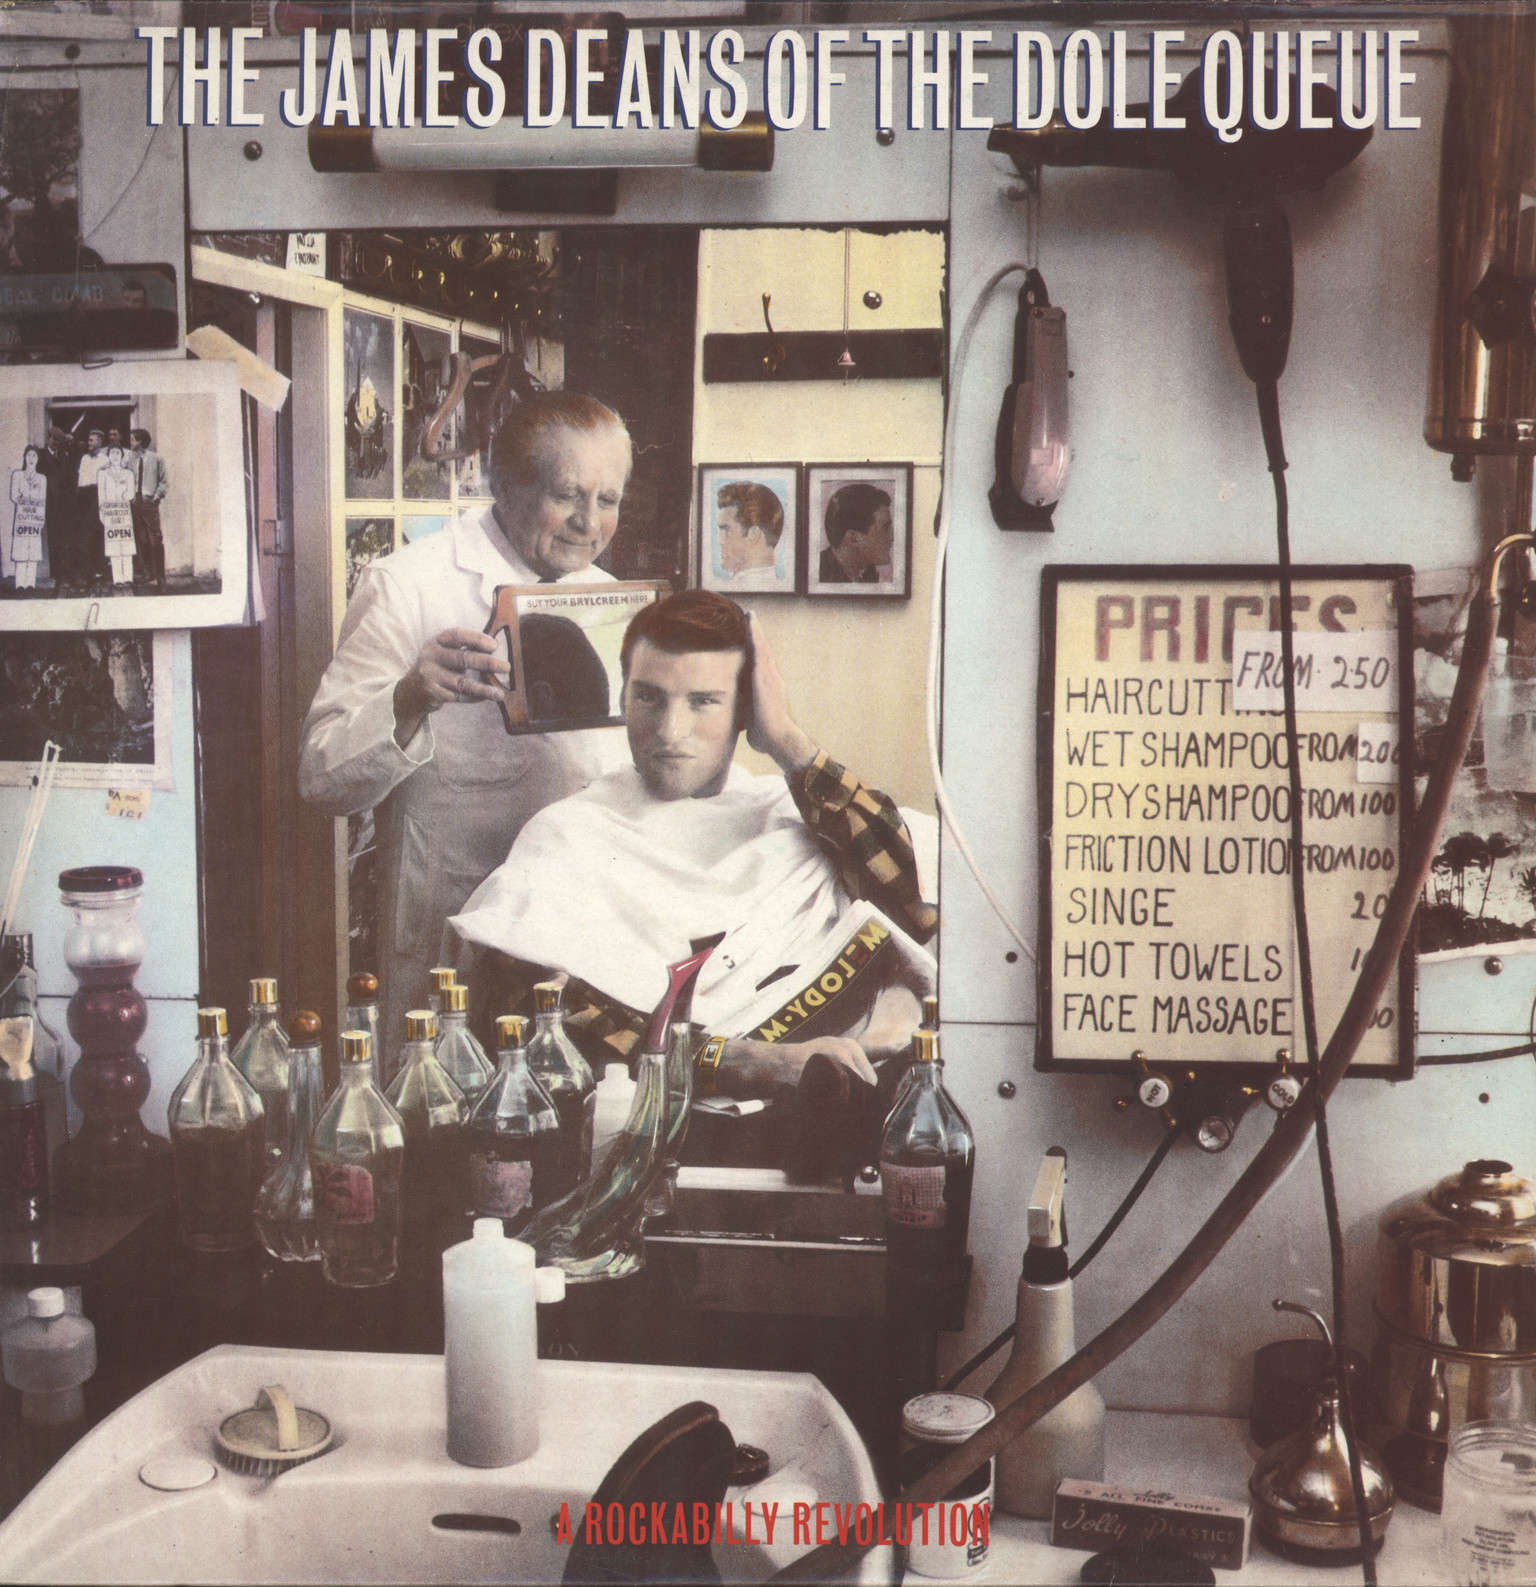 Various: The James Deans Of The Dole Queue - A Rockabilly Revolution, LP (Vinyl)